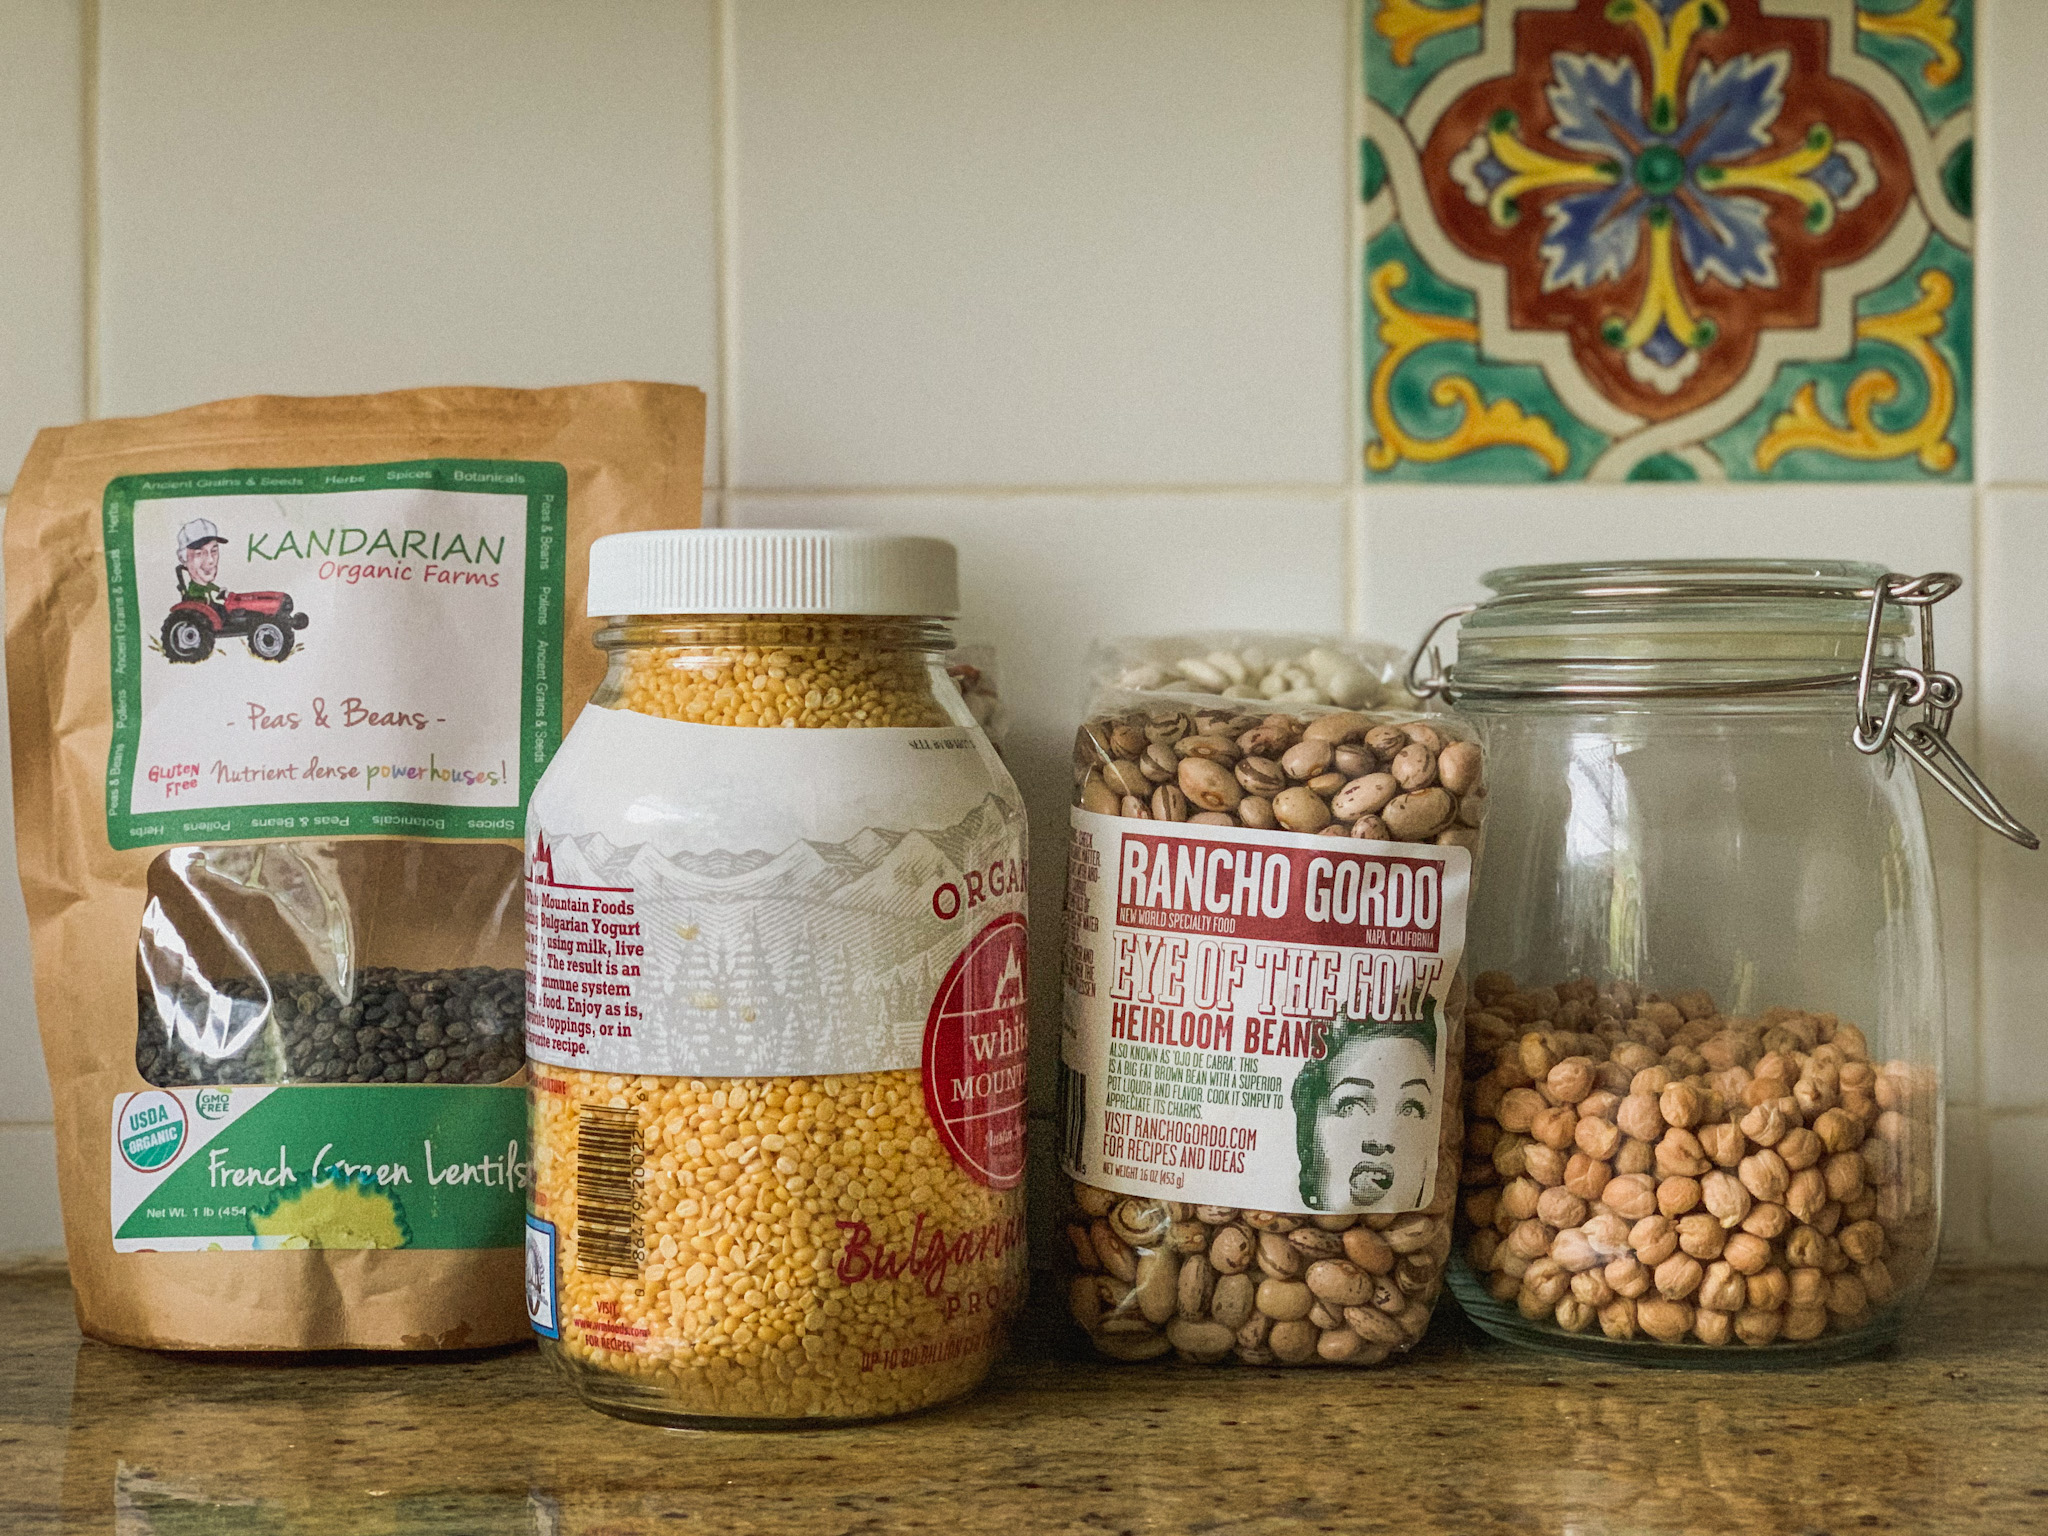 A row of dried beans in bags and jars are arrayed on a counter